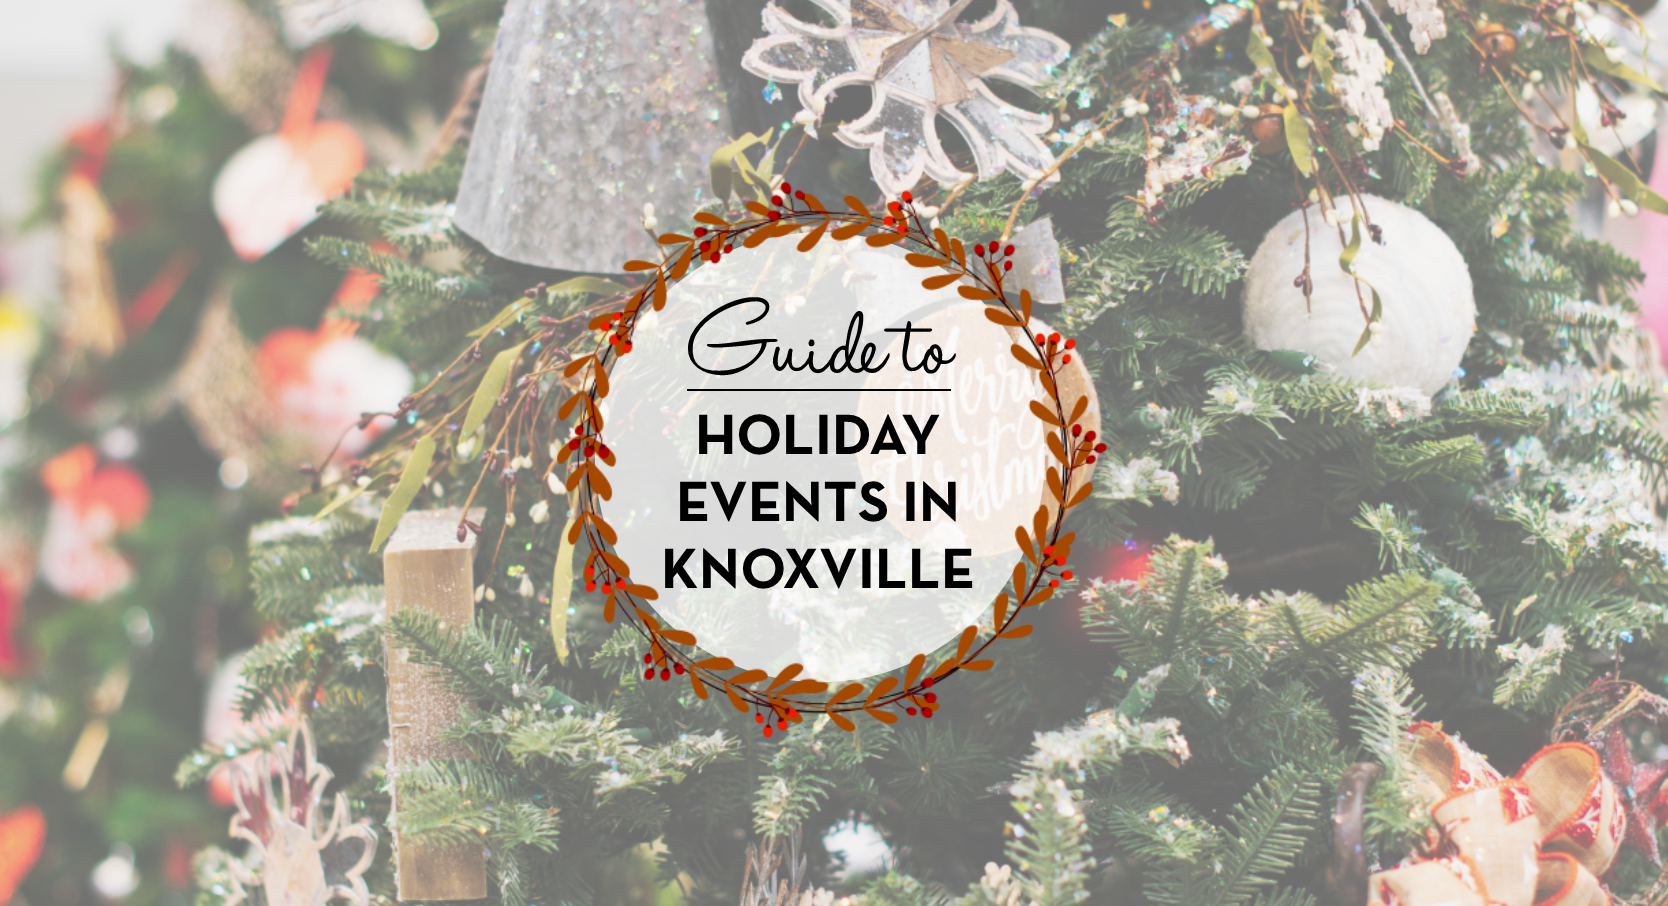 Christmas Events In Knoxville Tn 2020 Knoxville Family Christmas and Holiday Event Round Up